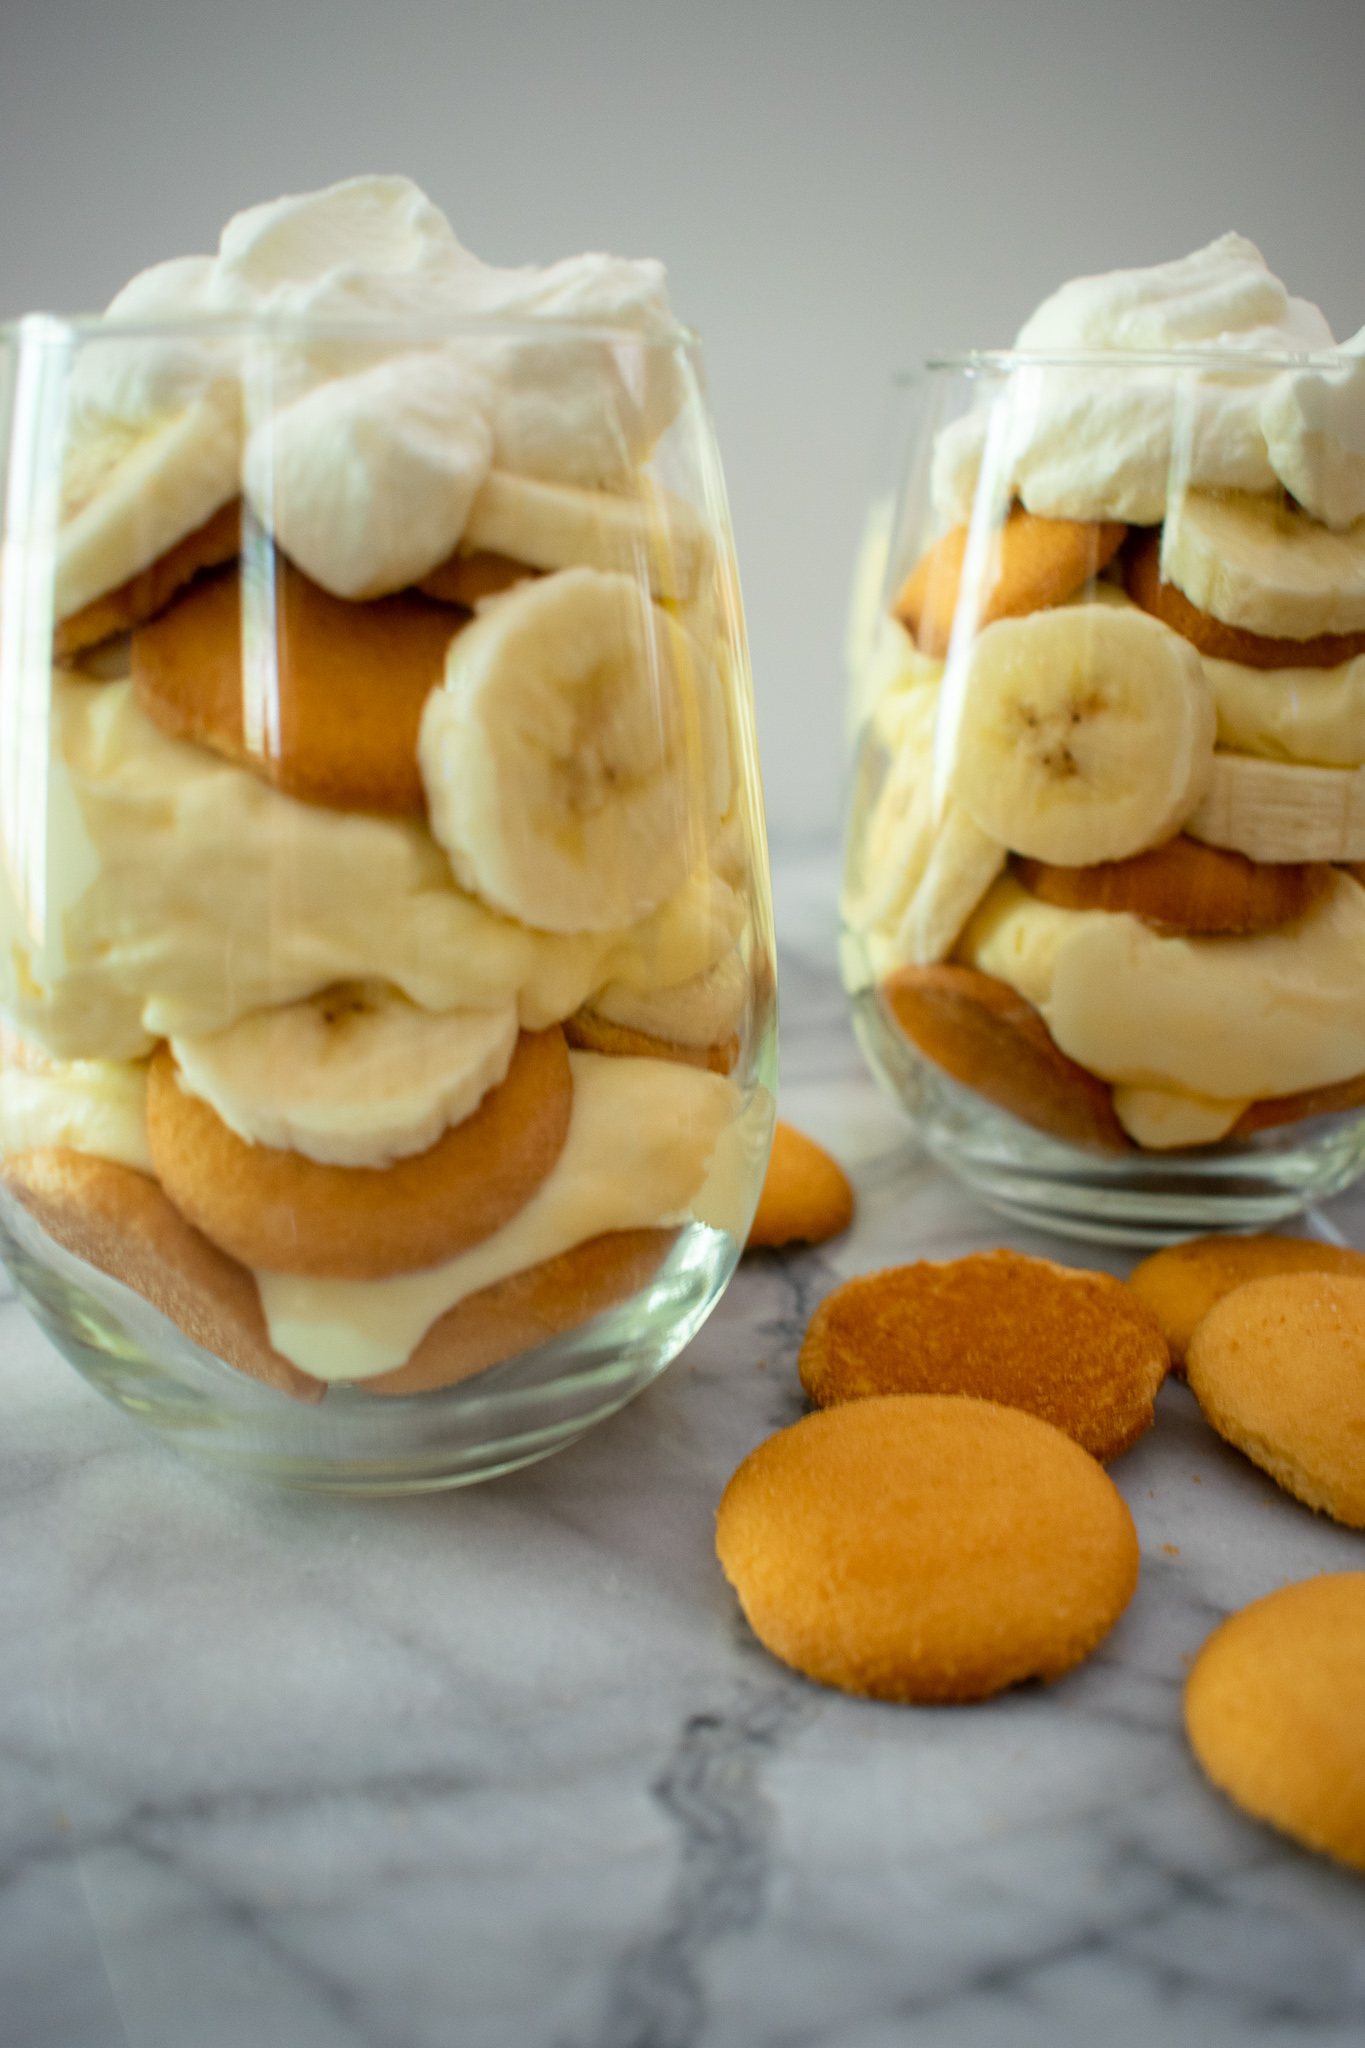 Old Fashioned Banana Pudding layered with Nilla Wafers, silky pudding, sliced bananas and homemade whipped cream.